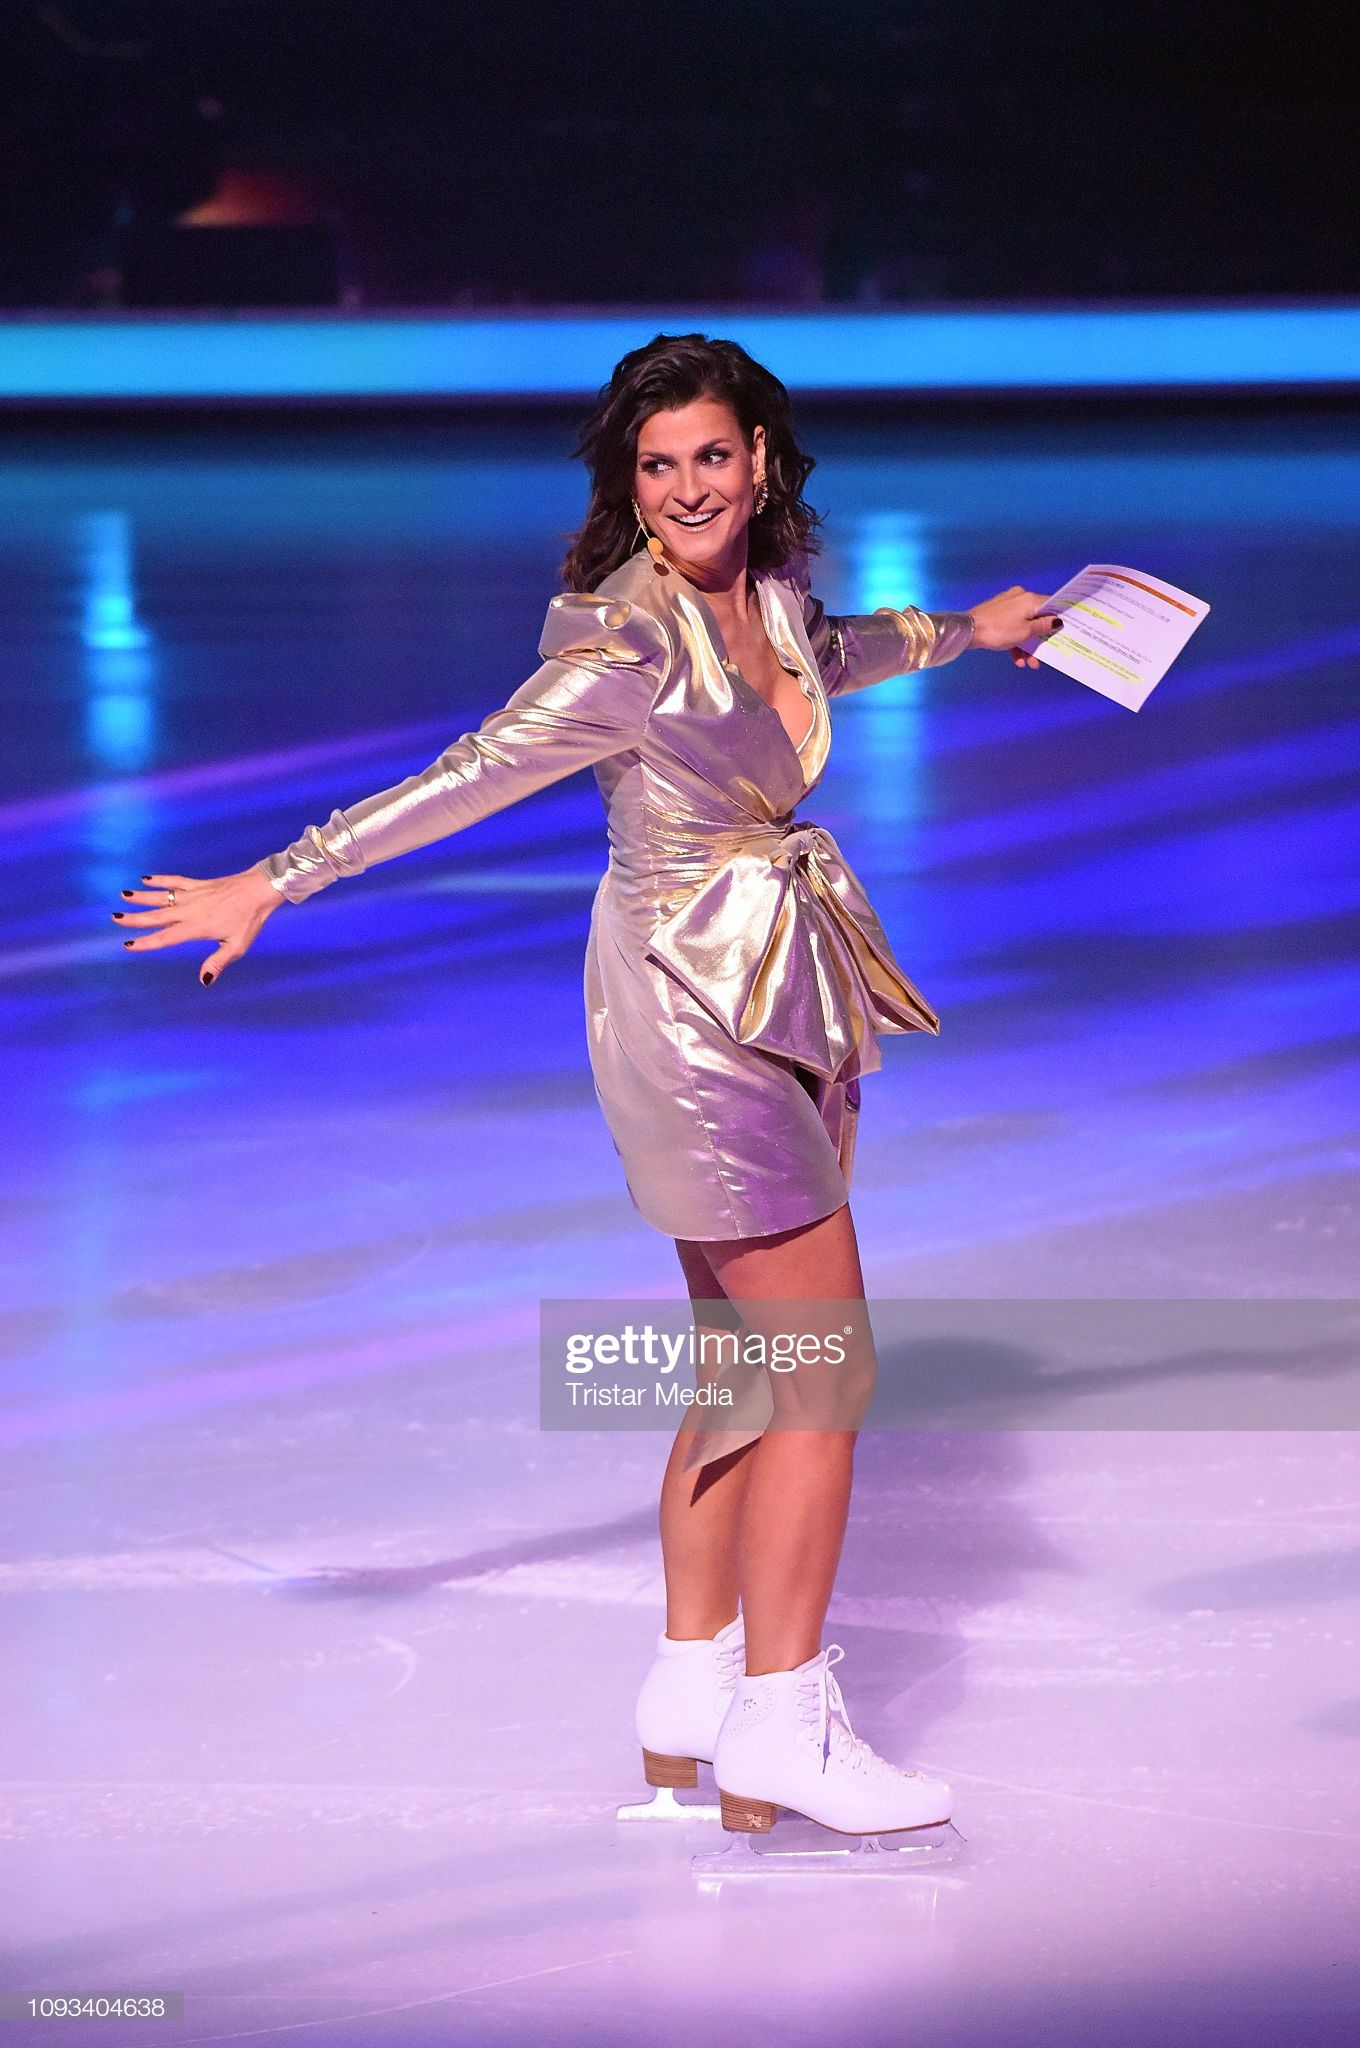 Marlene Lufen During The Dancing On Ice Sat 1 Tv Show On